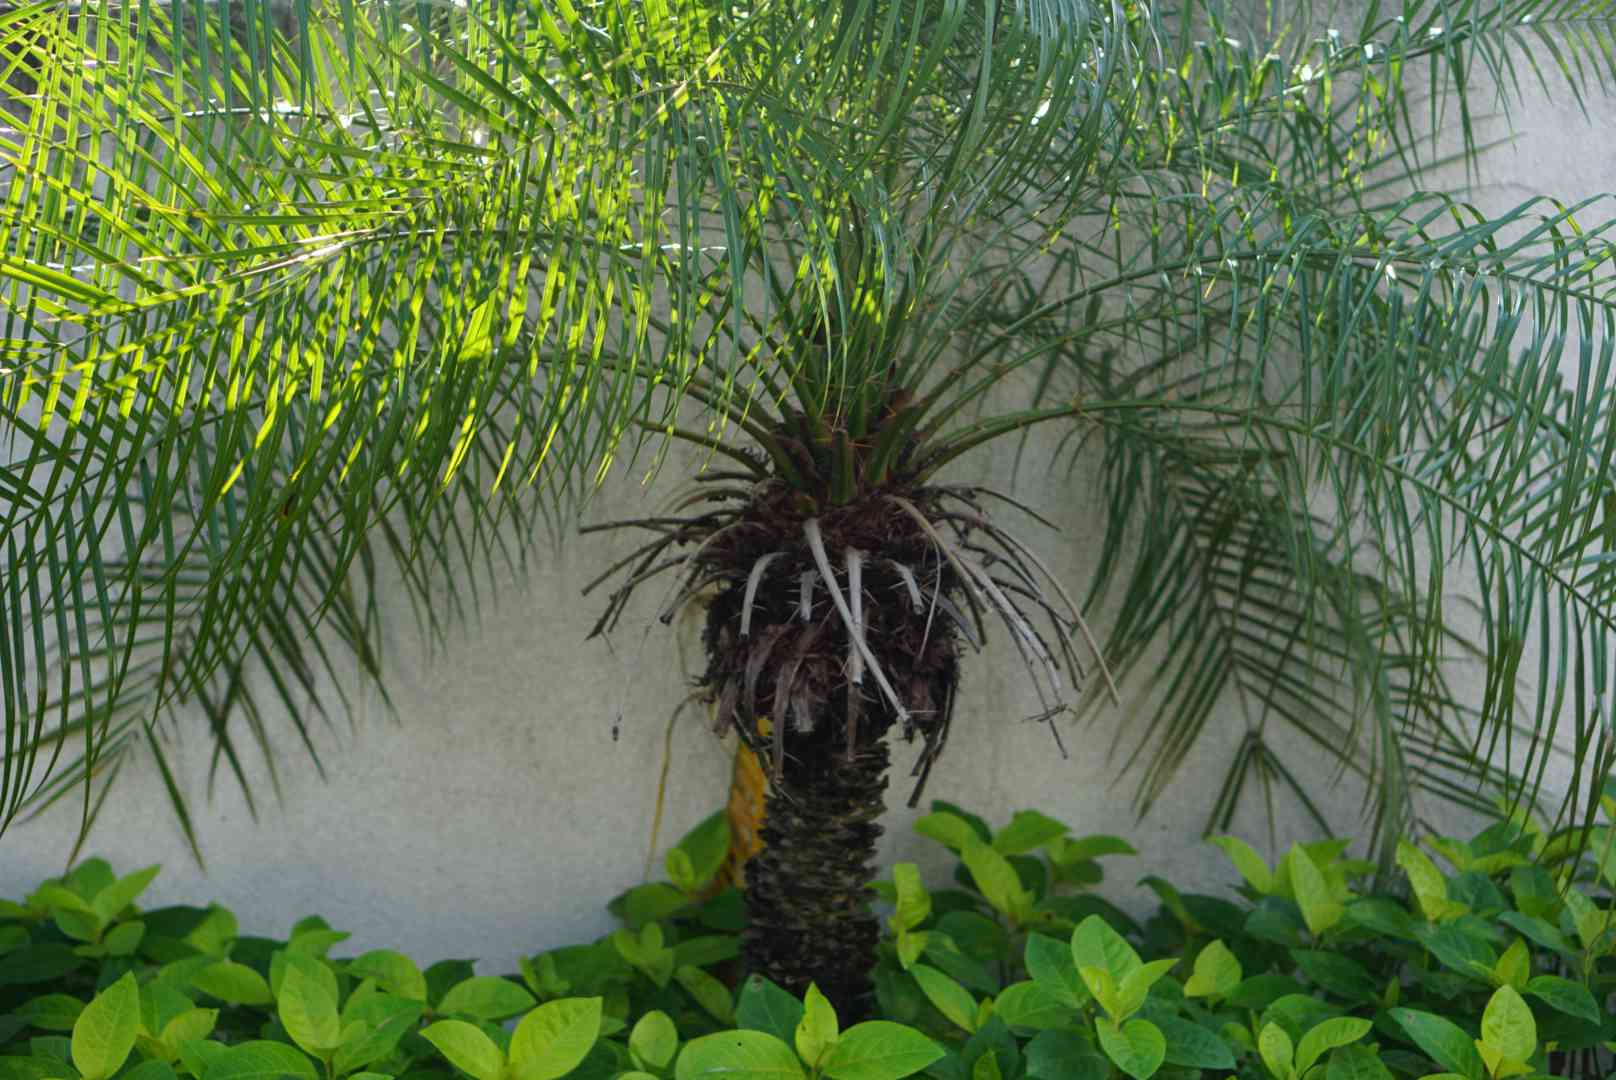 Queen palm with feathery fronds arching from a single trunk against white wall